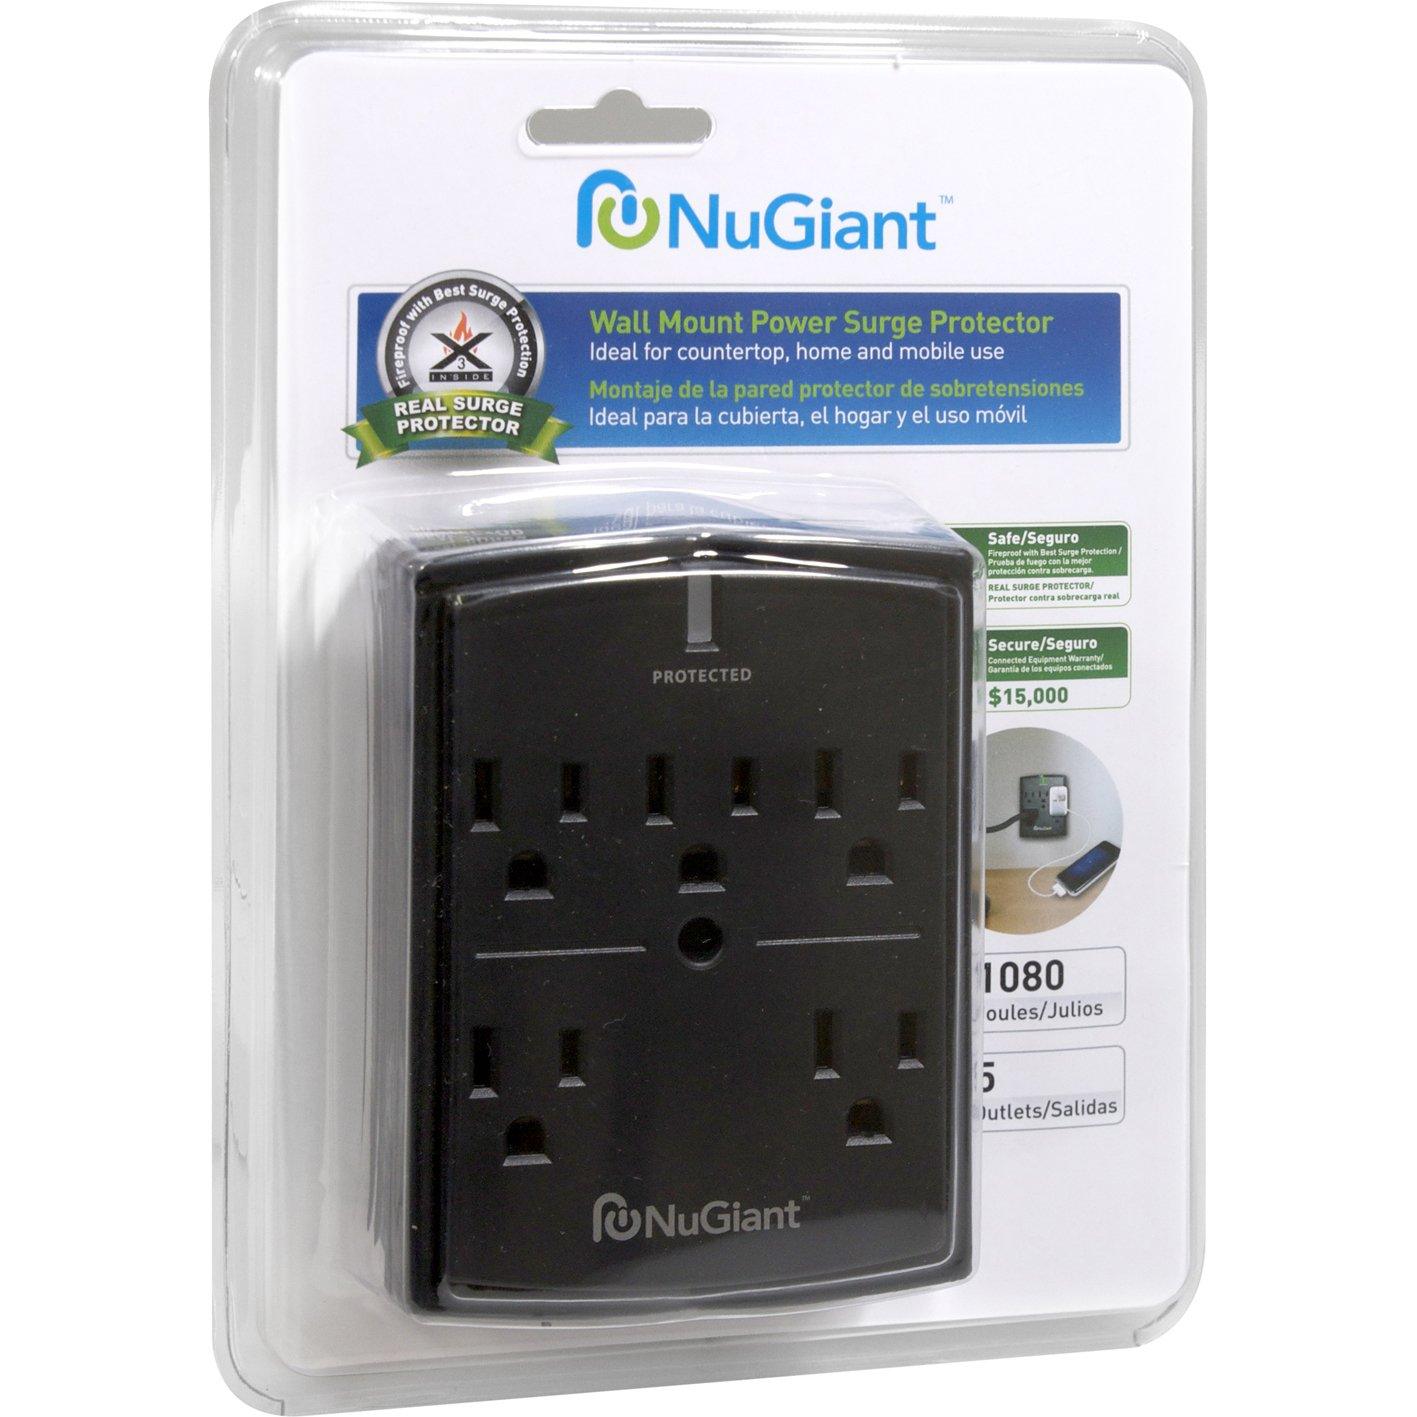 Amazon.com: NuGiant NSS15 5-Outlet Wall Mount Power Surge Protector: Home Audio & Theater